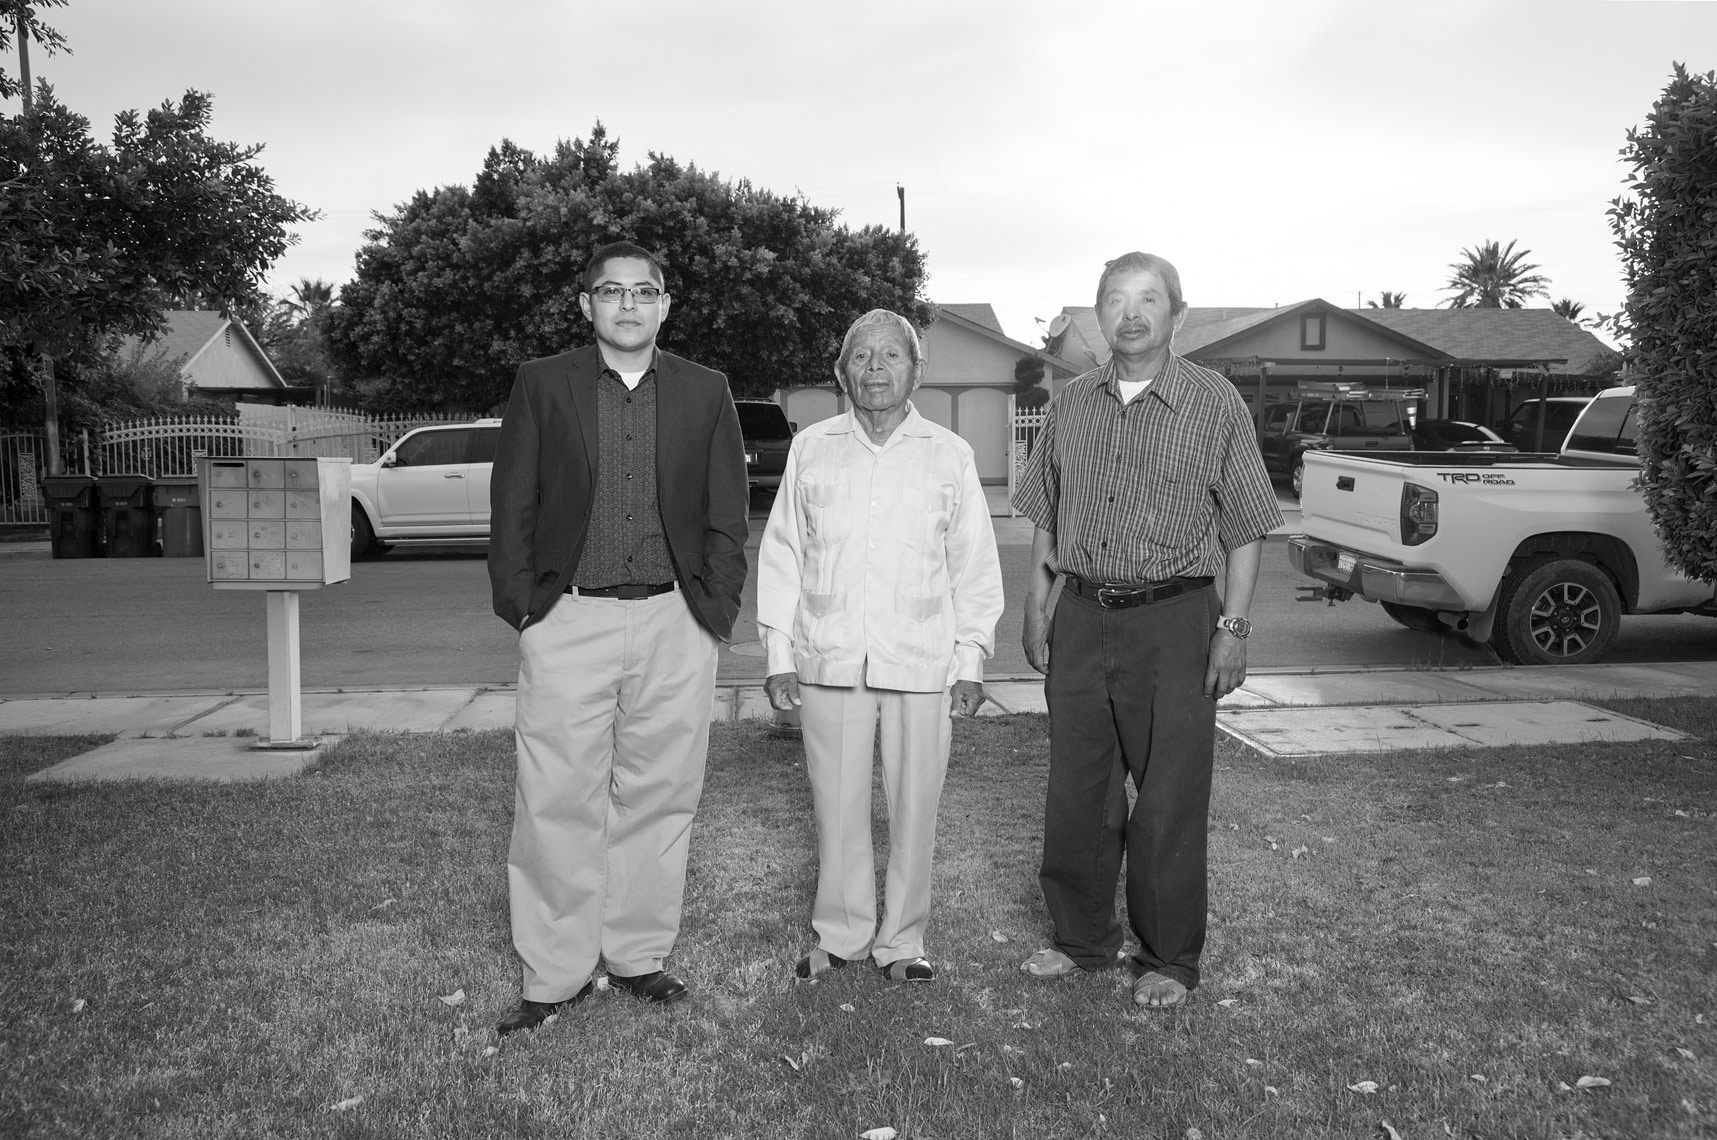 Castulo, Onesimo and Jeronimo Estrada standing in front of their family home in Coachella, Ca.